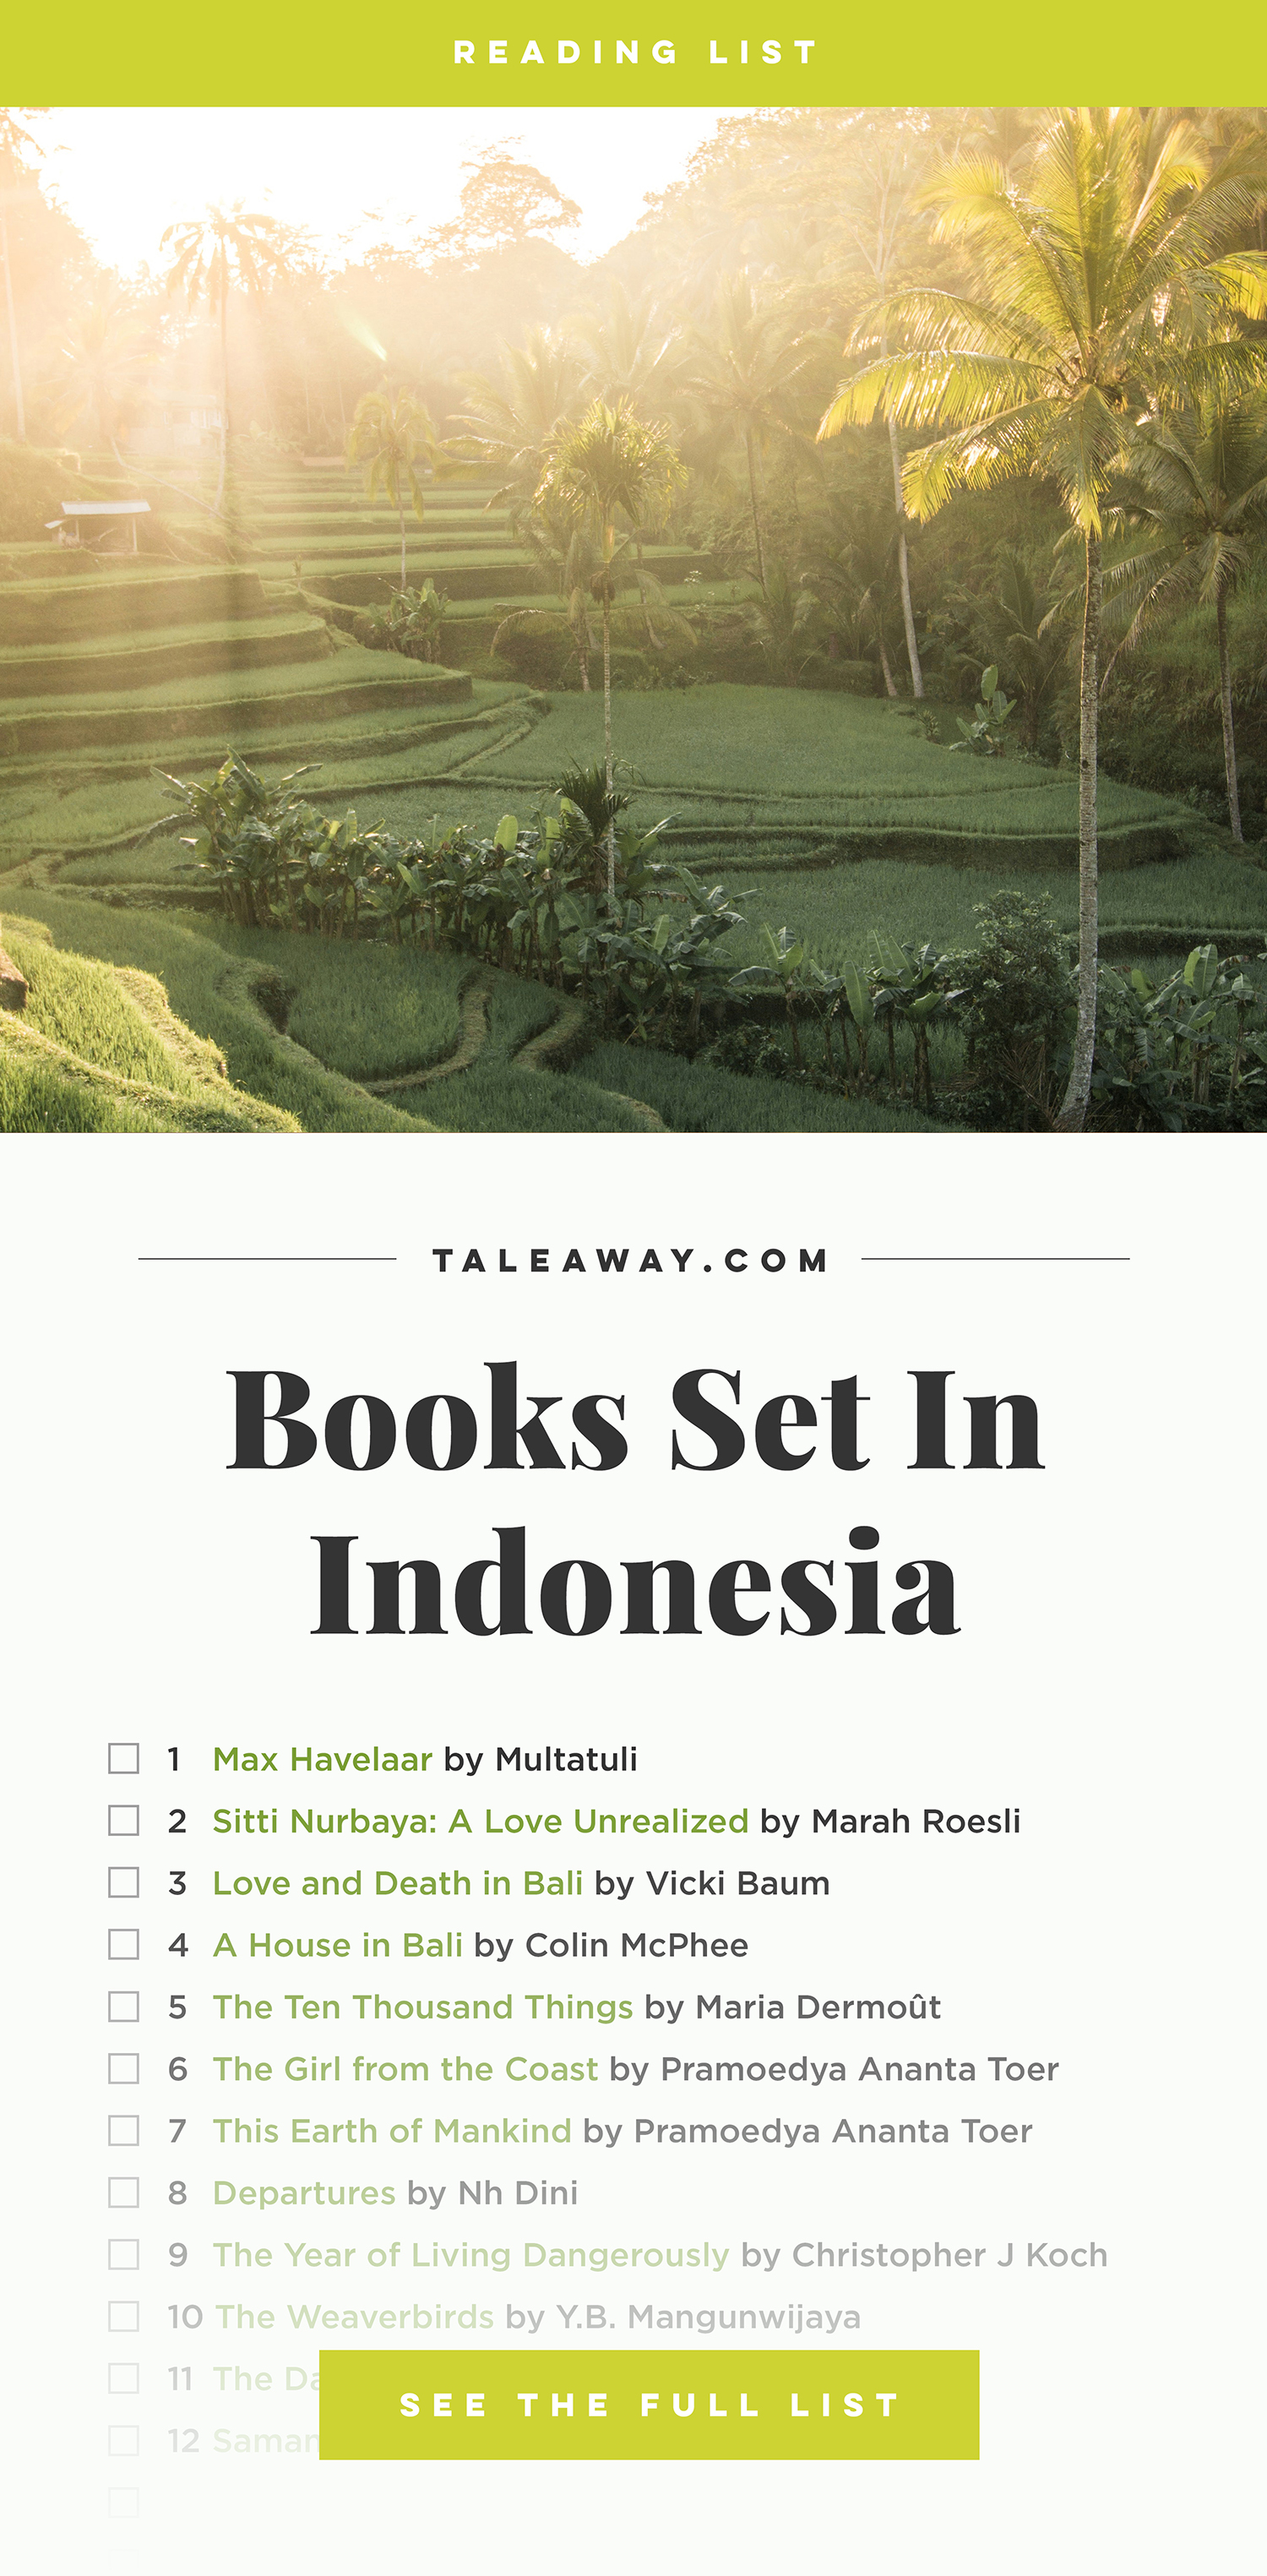 Books Set In Indonesia. Visit www.taleway.com to find books from around the world. books indonesia, books about indonesia, indonesia inspiration, indonesia travel, indonesia reading, indonesia reading challenge, indonesia packing, novel indonesia, indonesia trip, bali book, bali inspiration, bali travel, travel reading challenge, ubud travel, gili travel, books set in asia, books and travel, indonesia book novel, indonesia book challenge, indonesia bucket list, indonesia backpacking, indonesian culture, indonesia guide, indonesia quotes, reading list, books around the world, books to read, books set in different countries